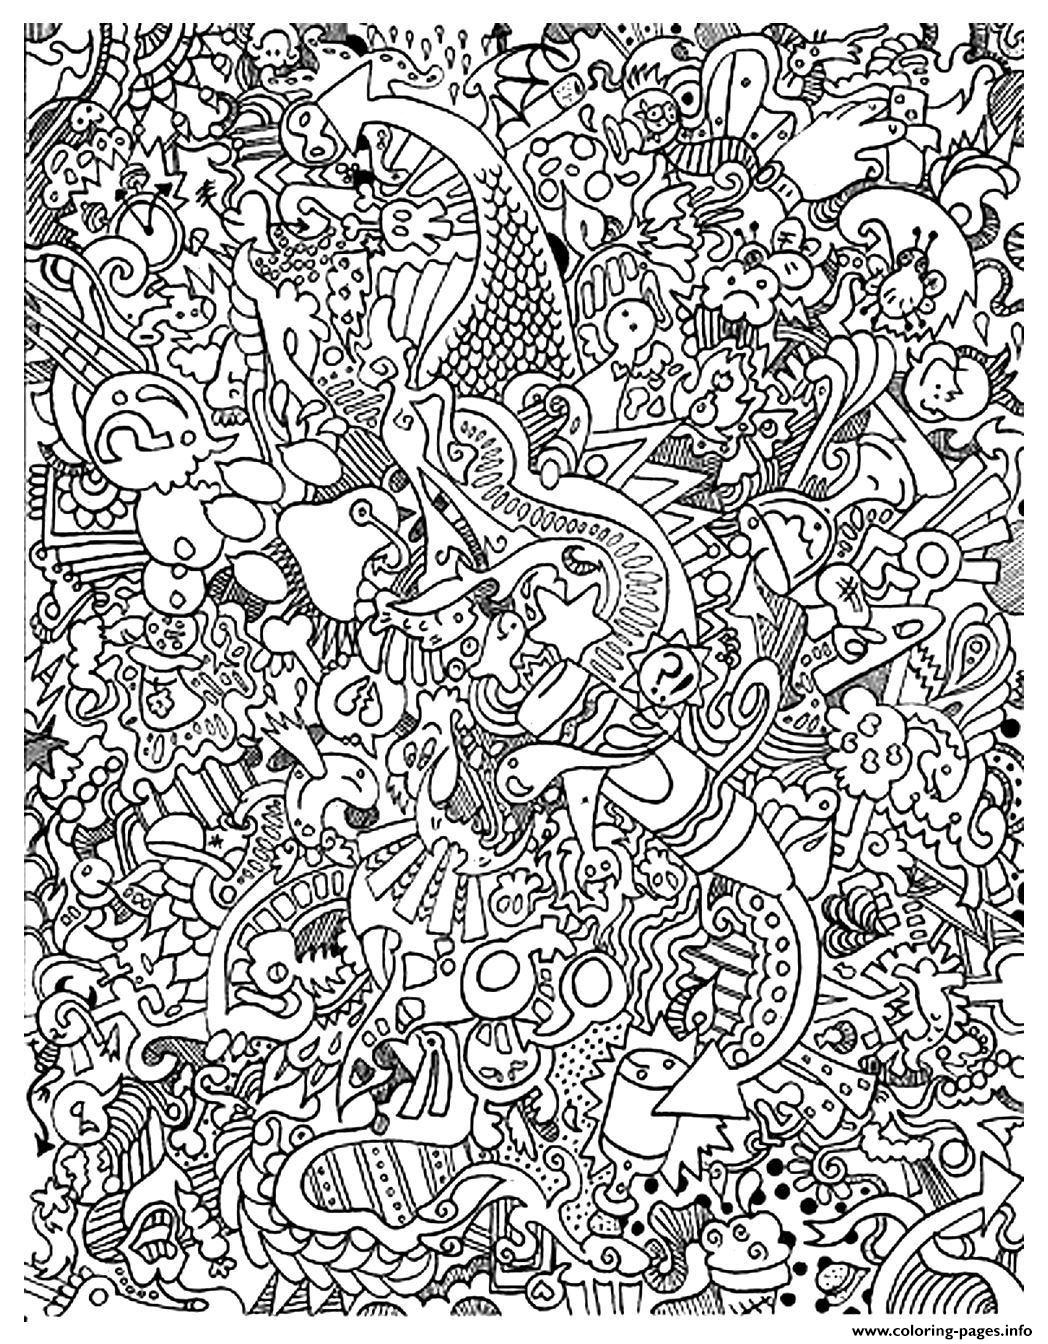 art pages to color art therapy coloring pages for adults free printable art pages color to art